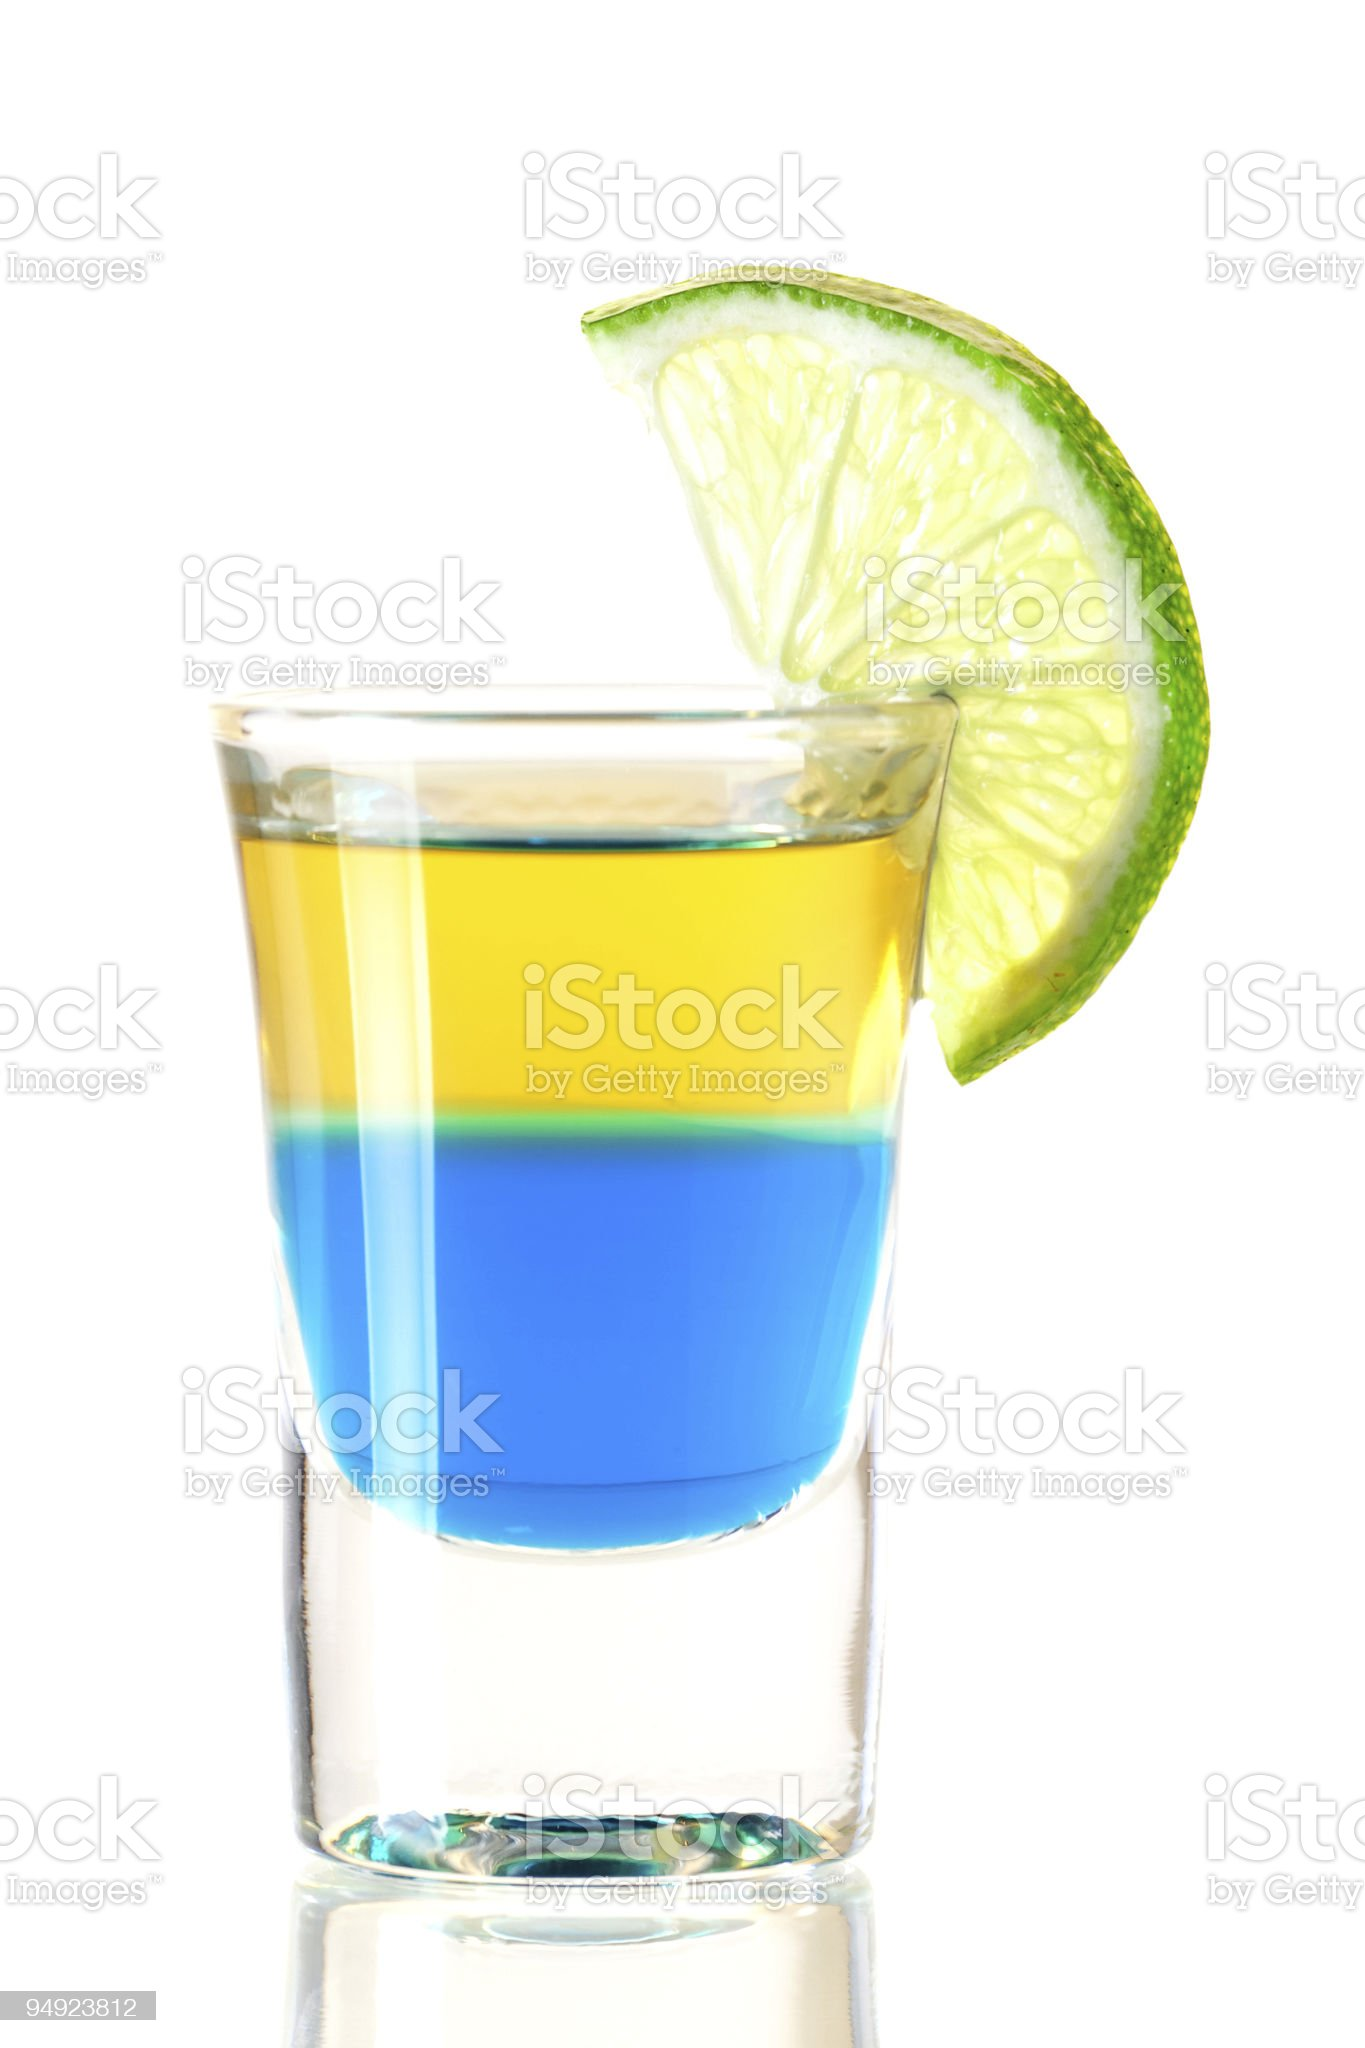 Shot cocktail collection: Blue Tequila royalty-free stock photo